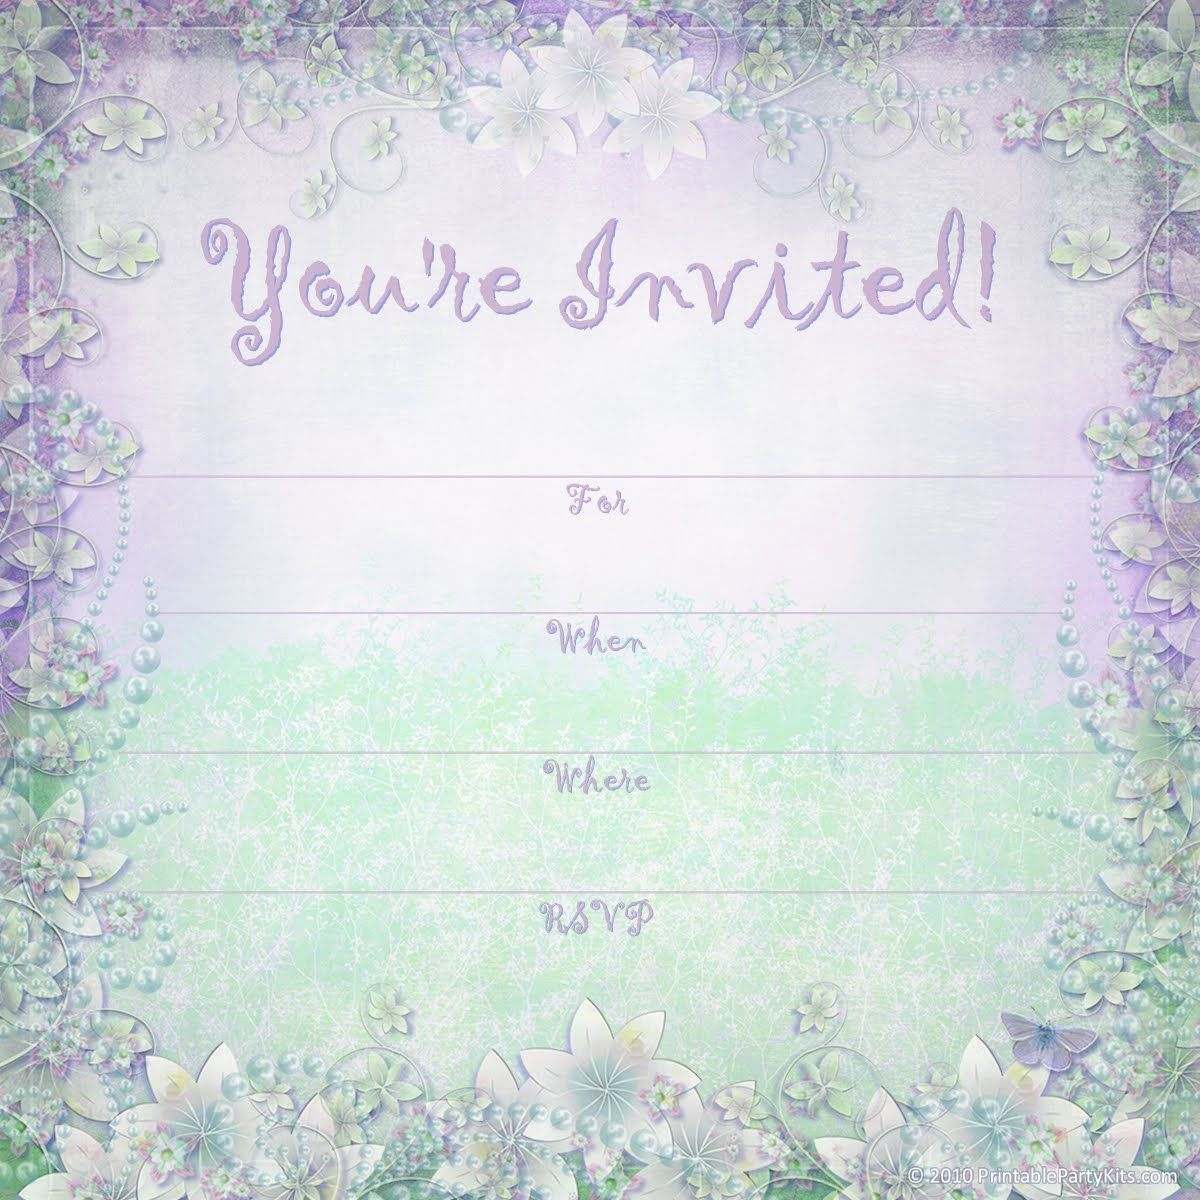 Pindj Peter On 16 Year Old Birthday Party Ideas / Themes - Free Printable 16Th Birthday Party Invitation Templates